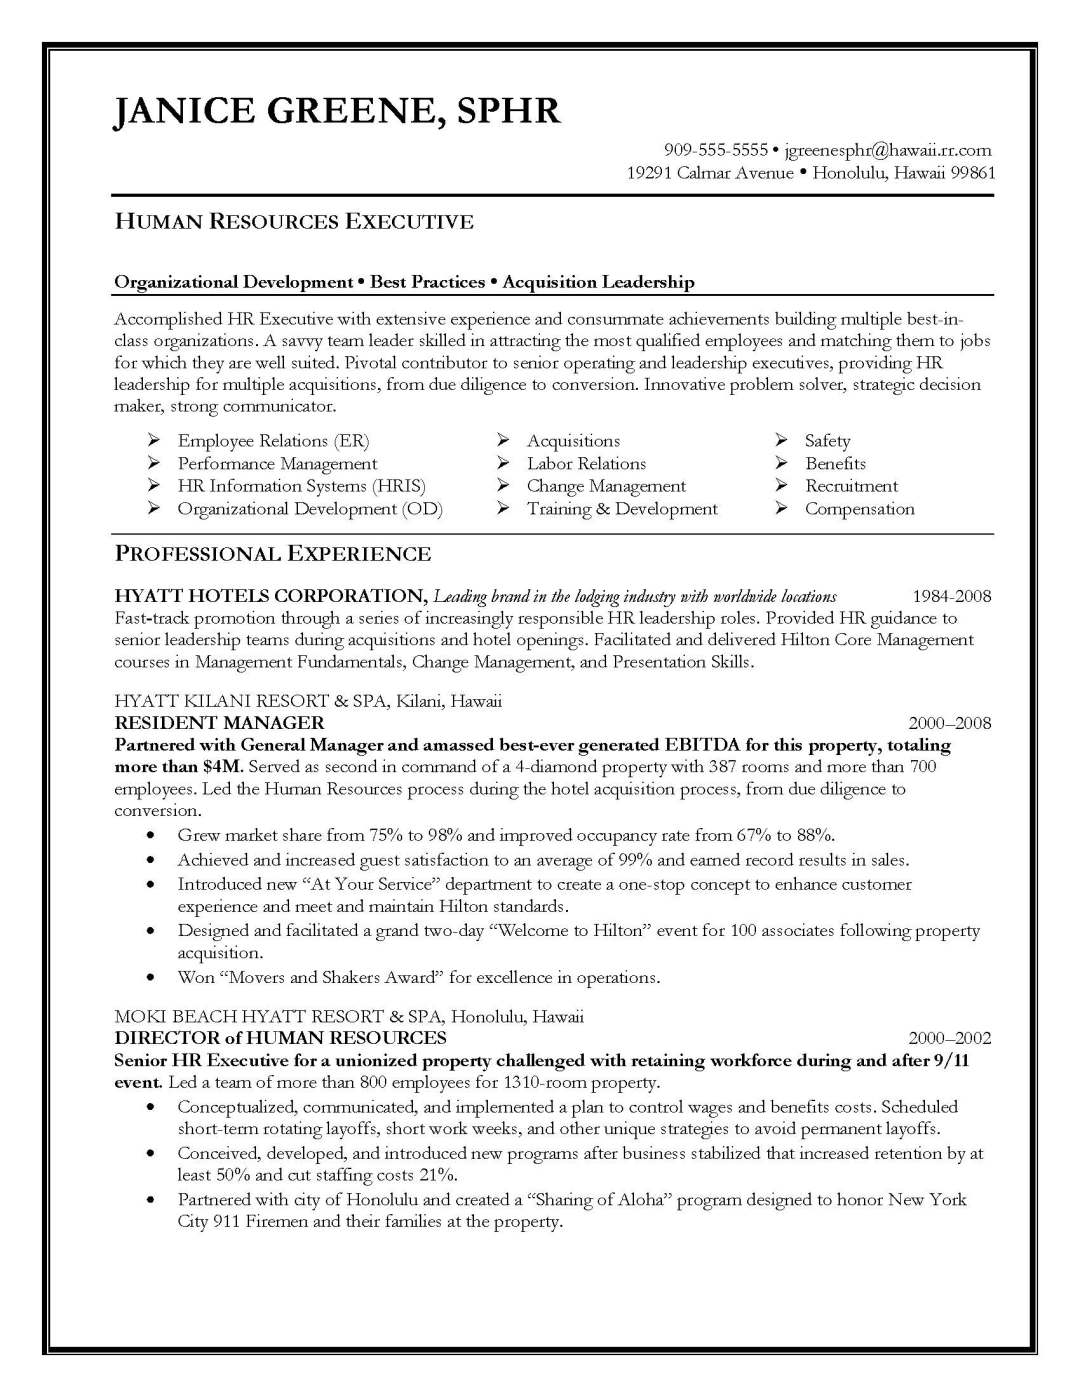 human resources resume resume for human resources generalist executive free professional example